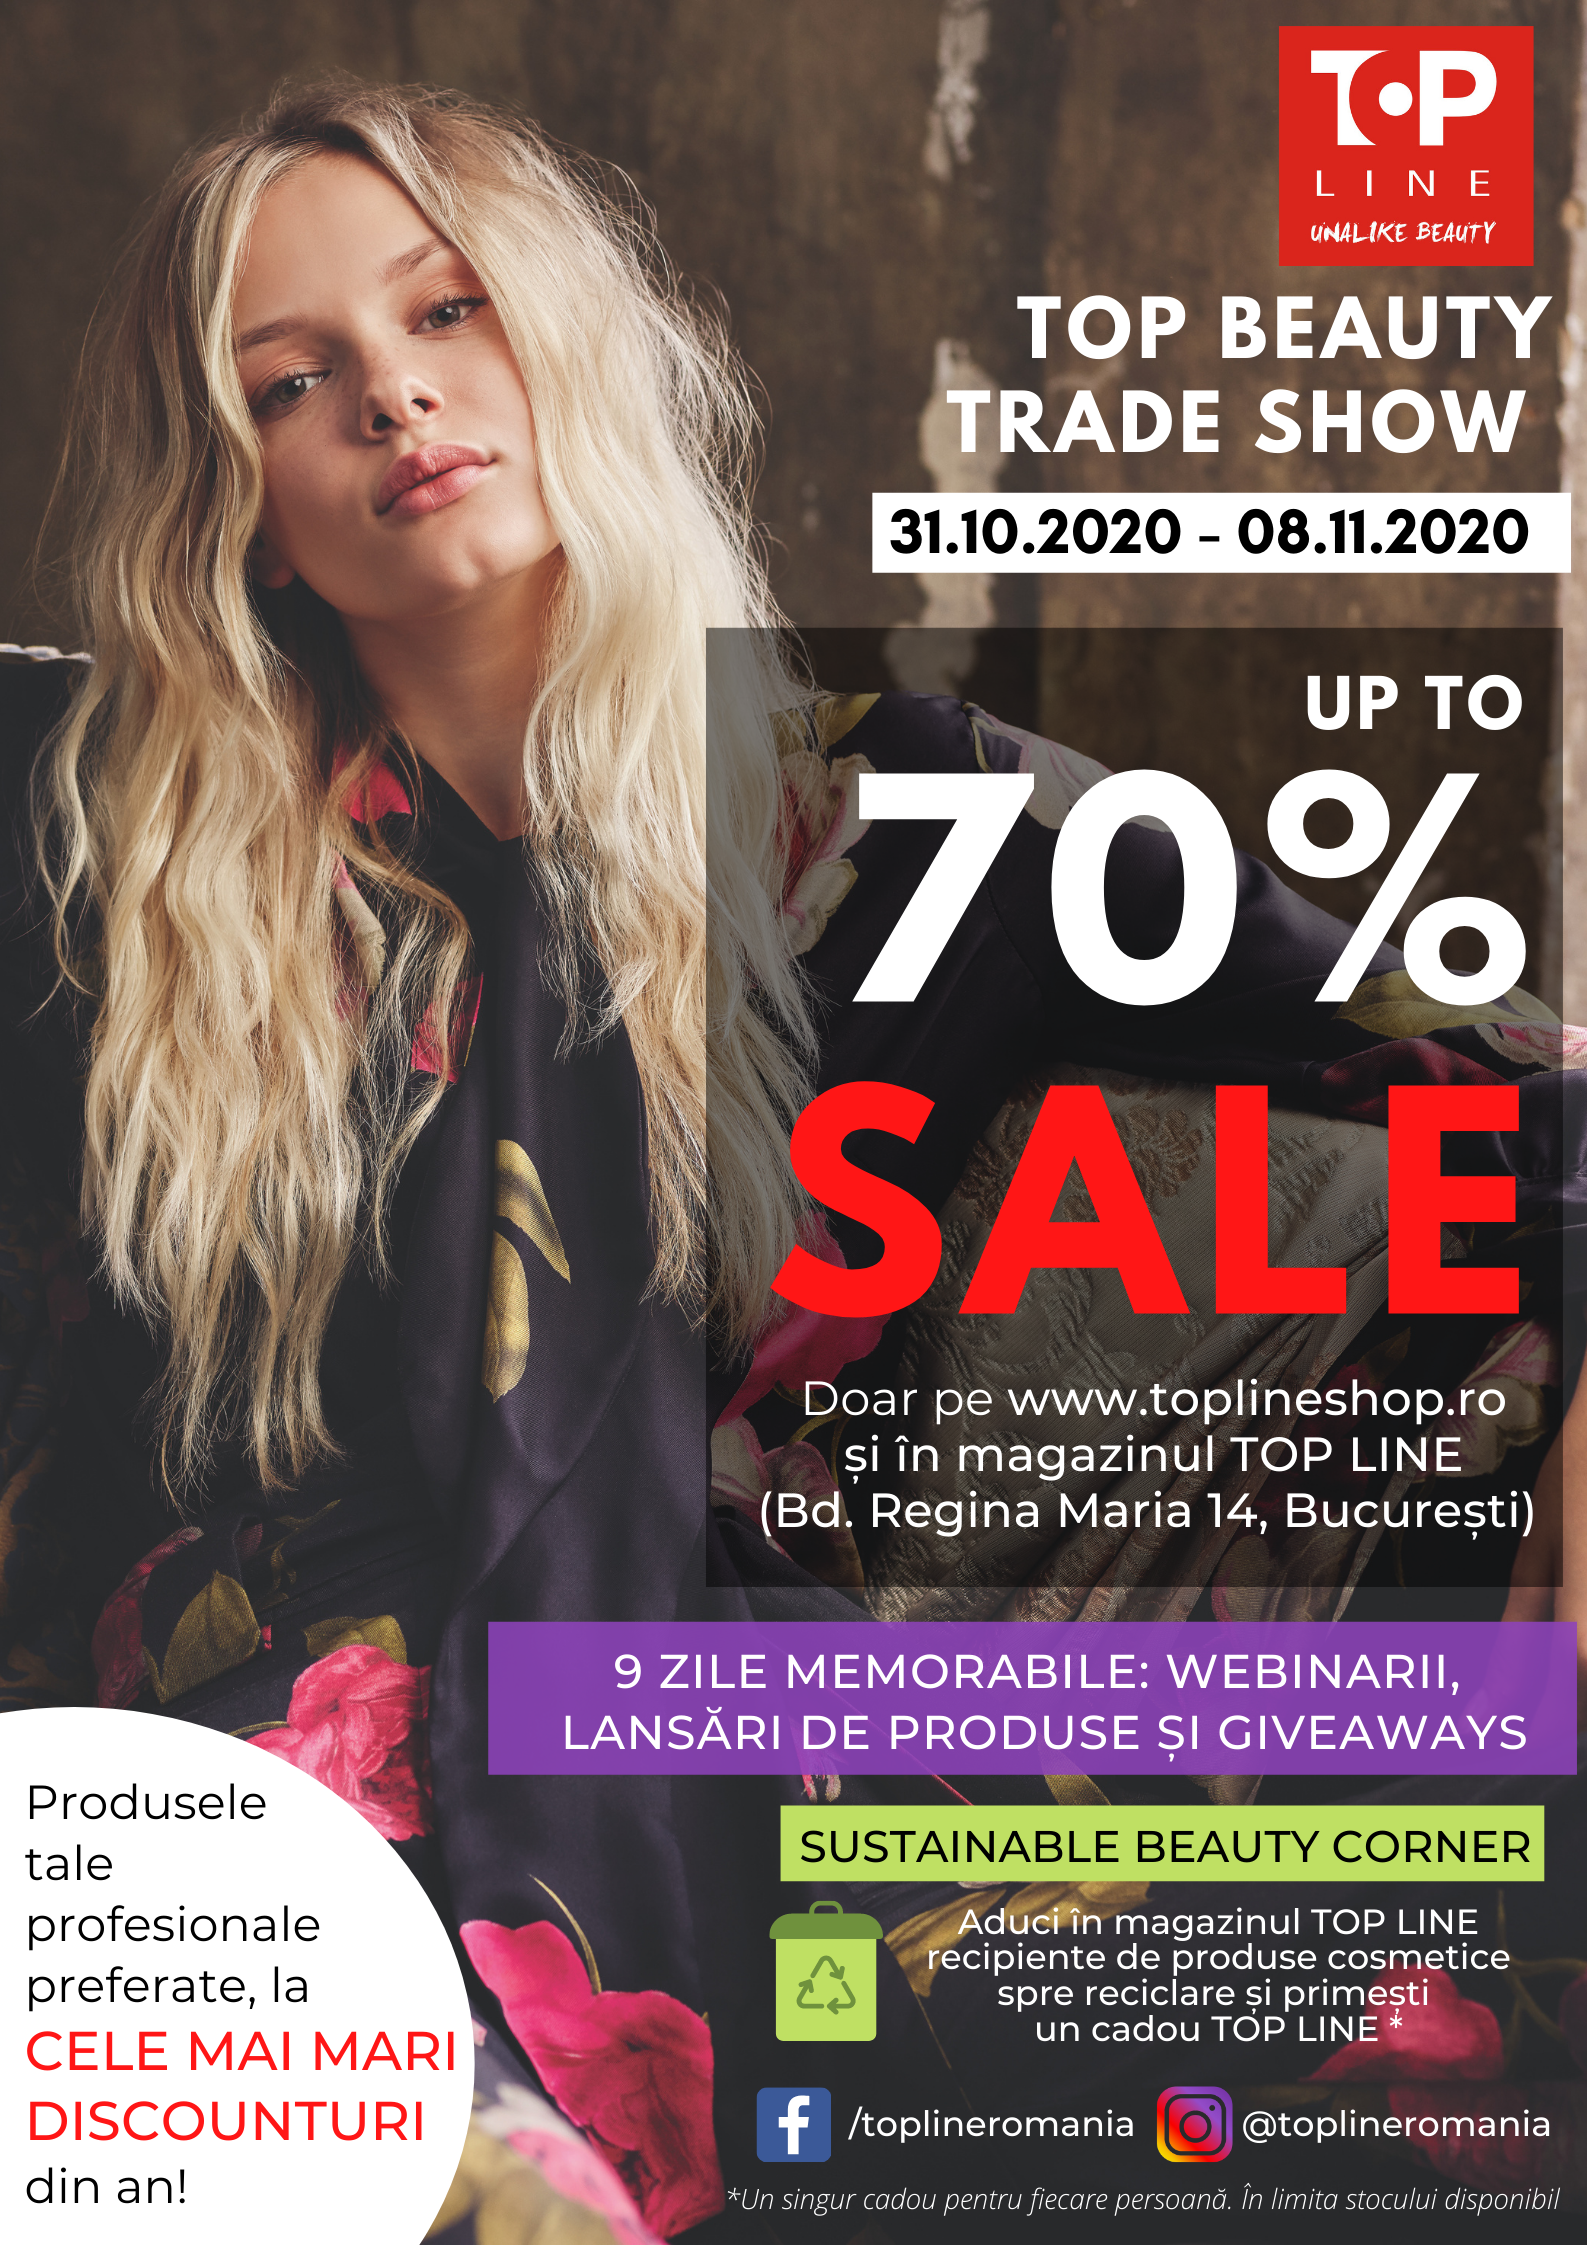 TOP BEAUTY TRADE SHOW 2020